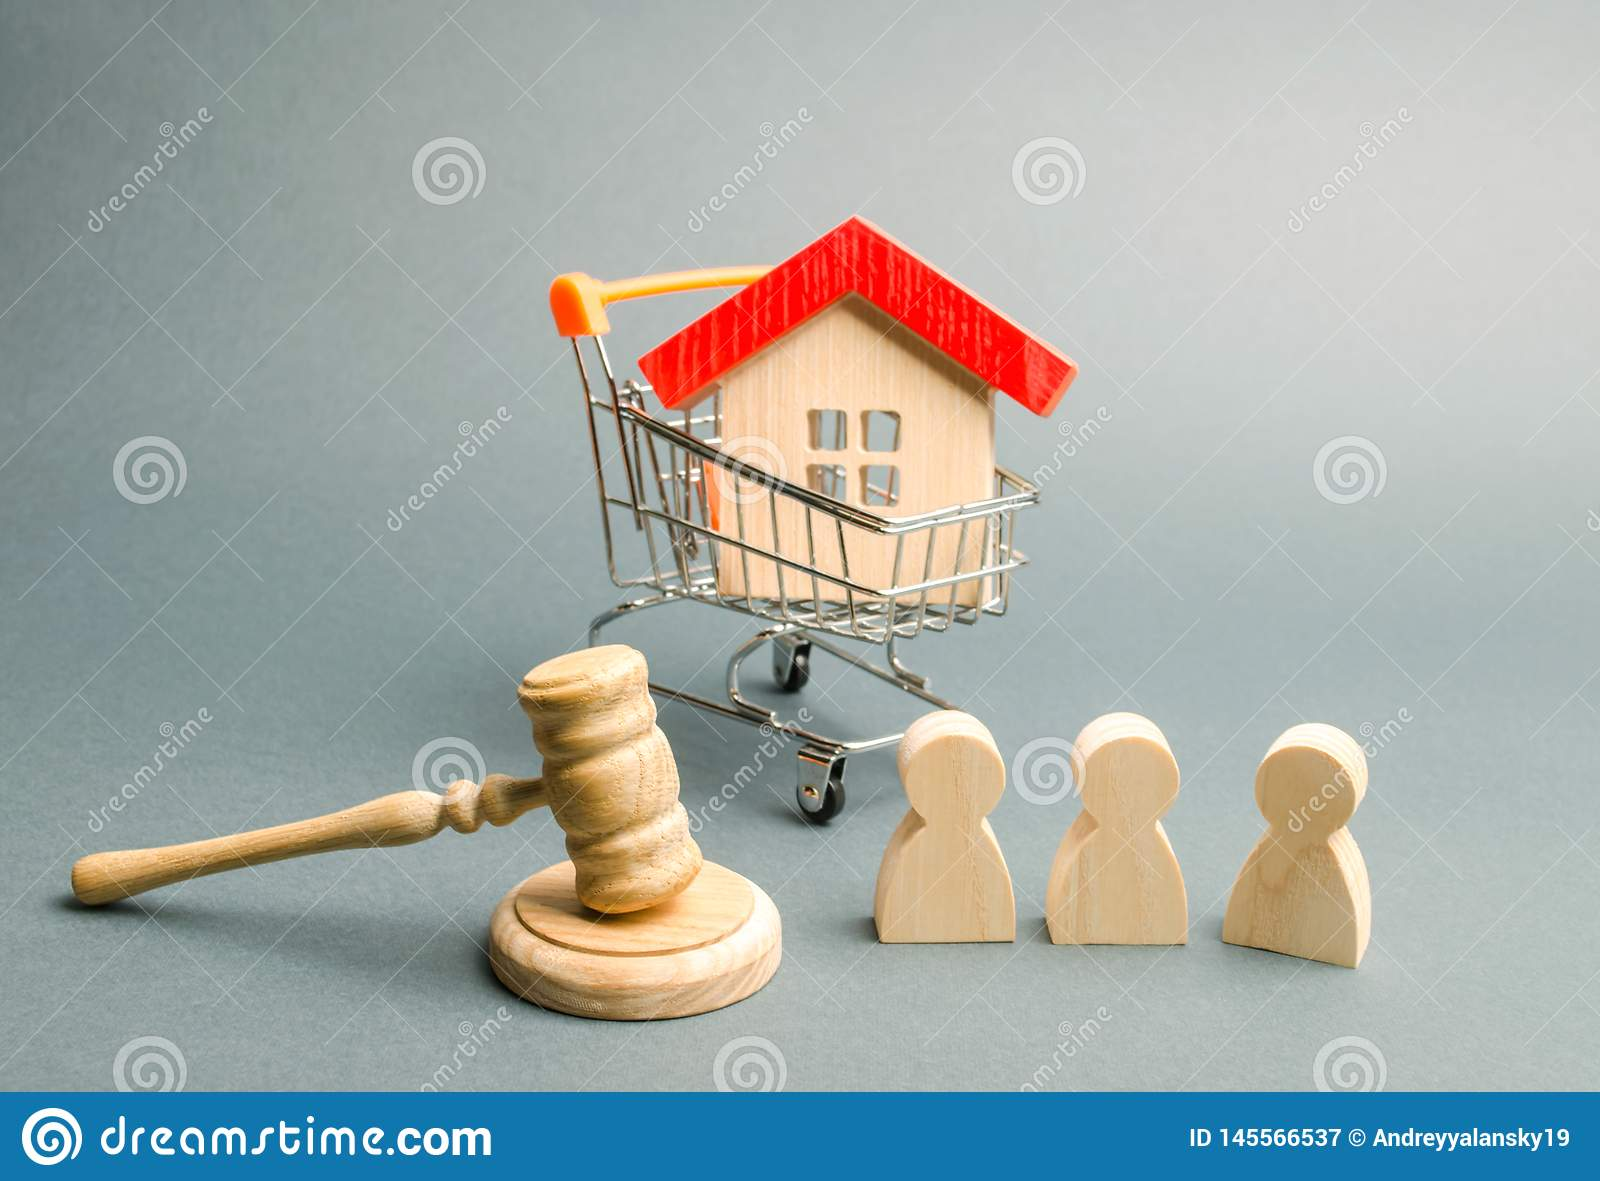 The House Of Hammer wooden figures of people, a house in a supermarket trolley